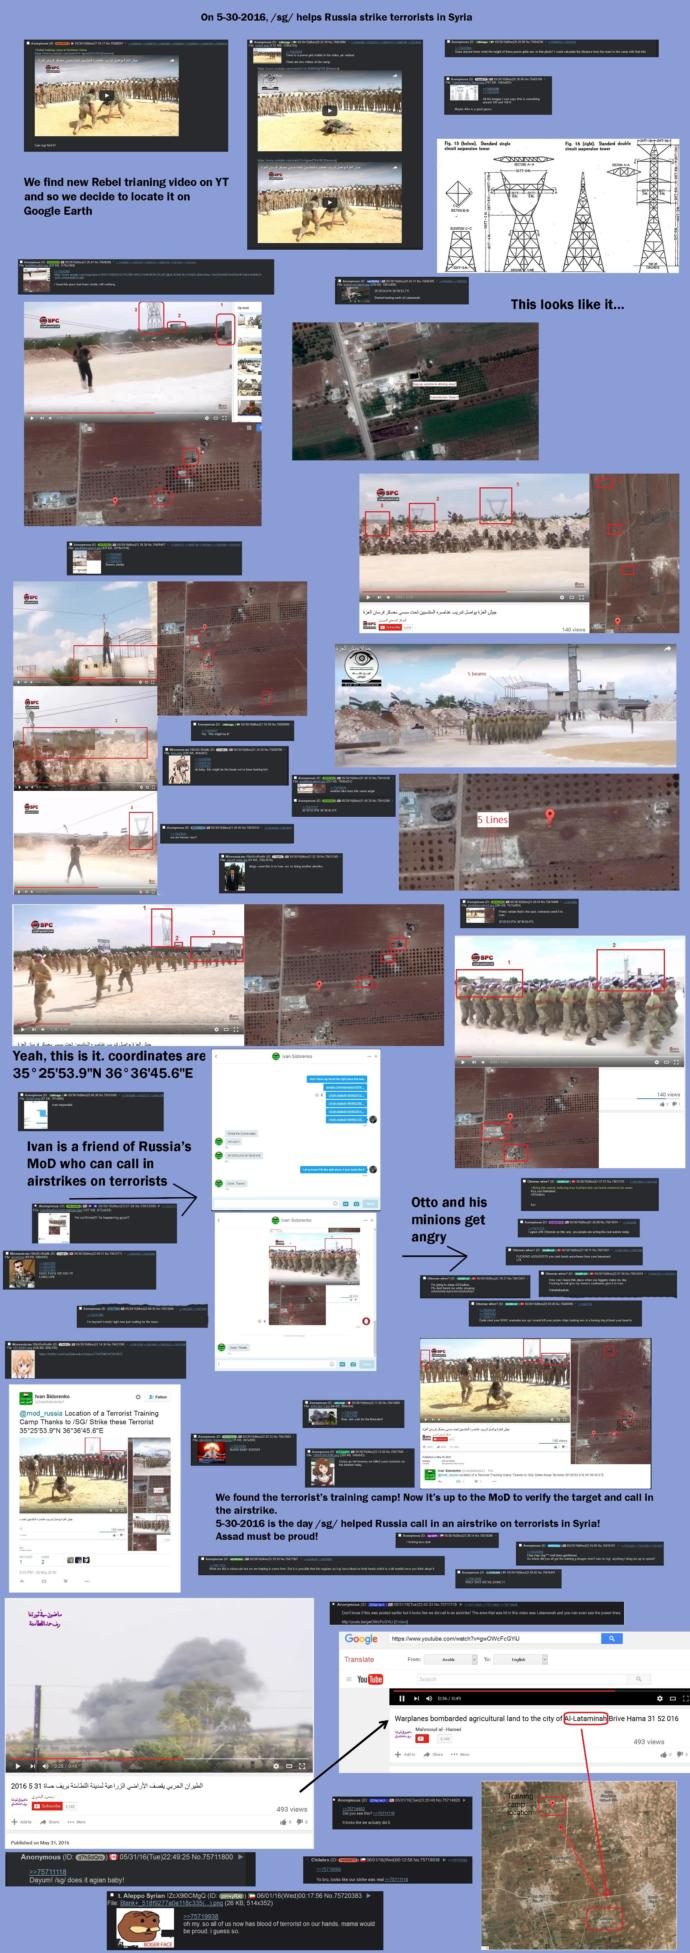 Never thought I'd live to see this day... Did 4chan just call in an airstrike?